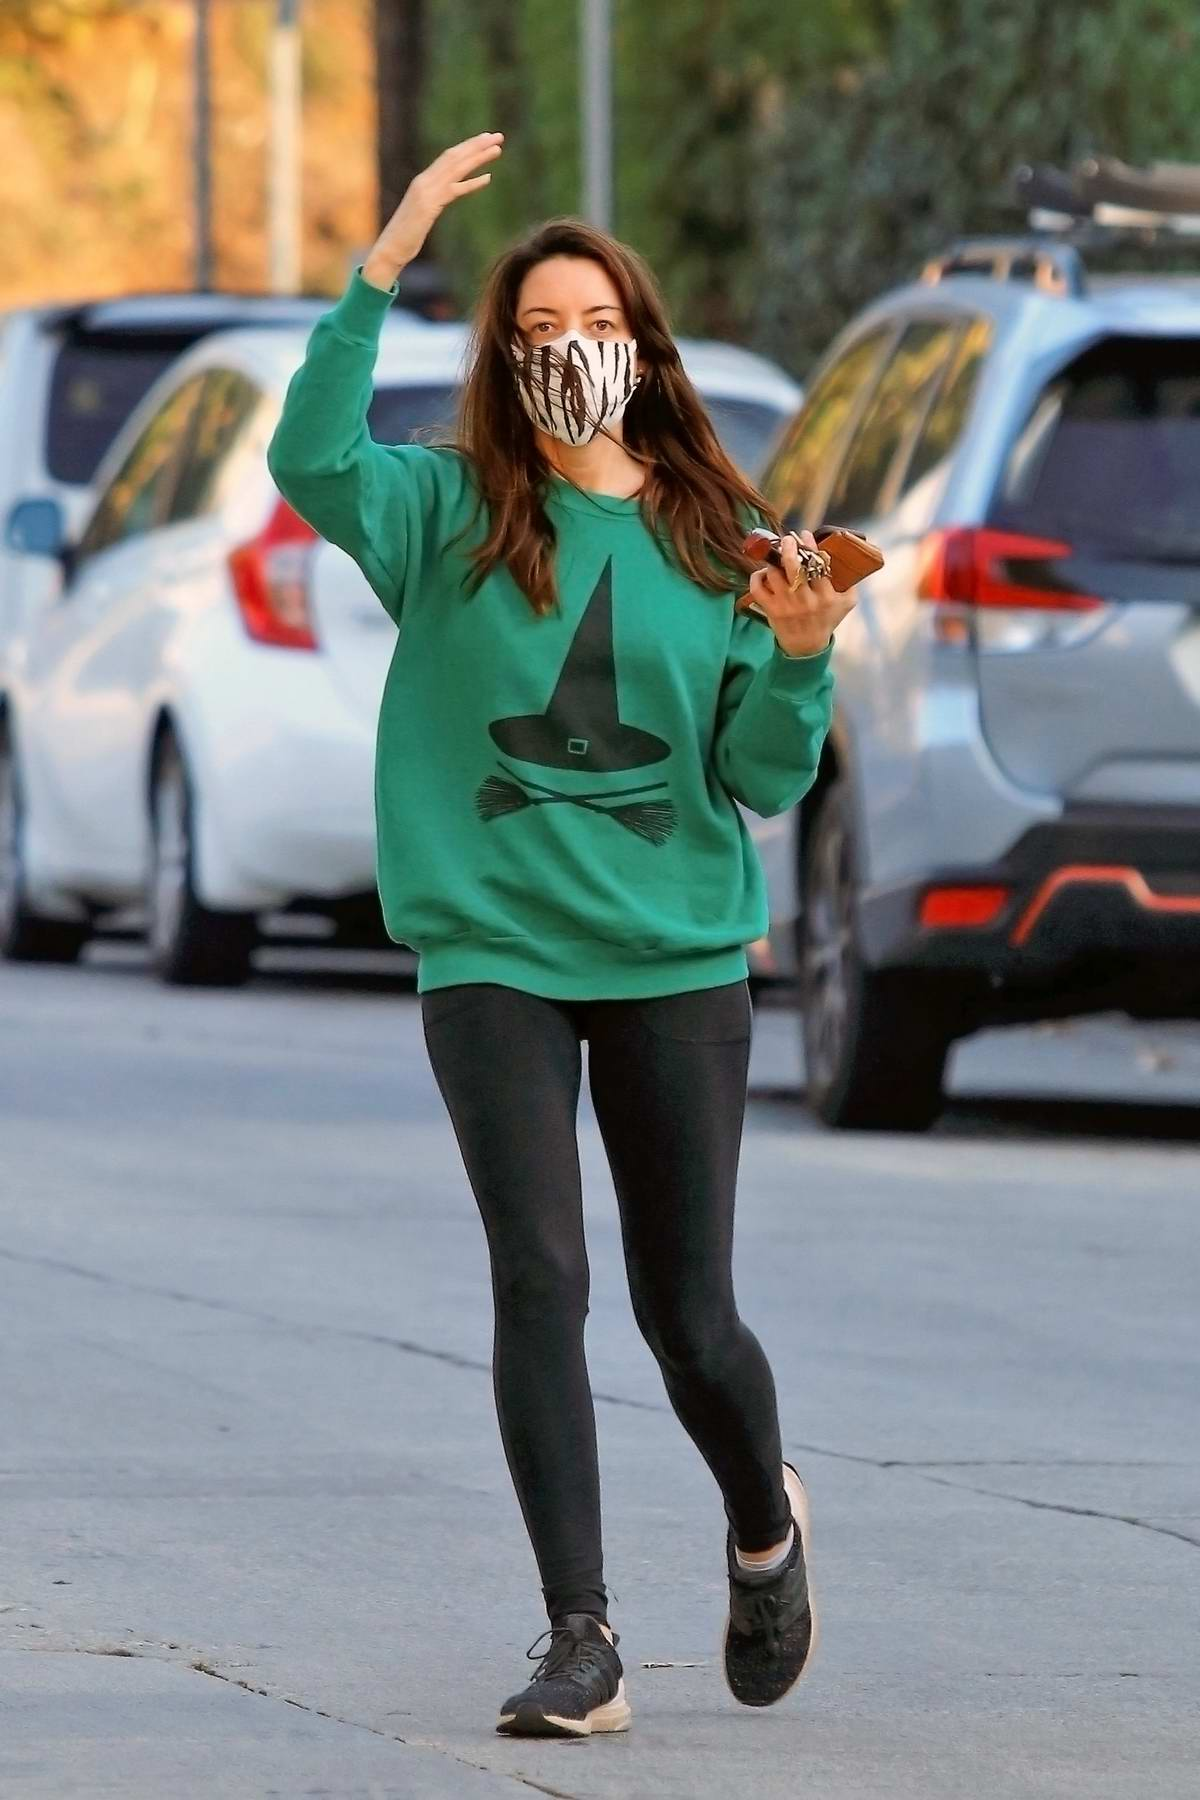 Aubrey Plaza dons a green sweatshirt and black leggings for an outing in Los Angeles